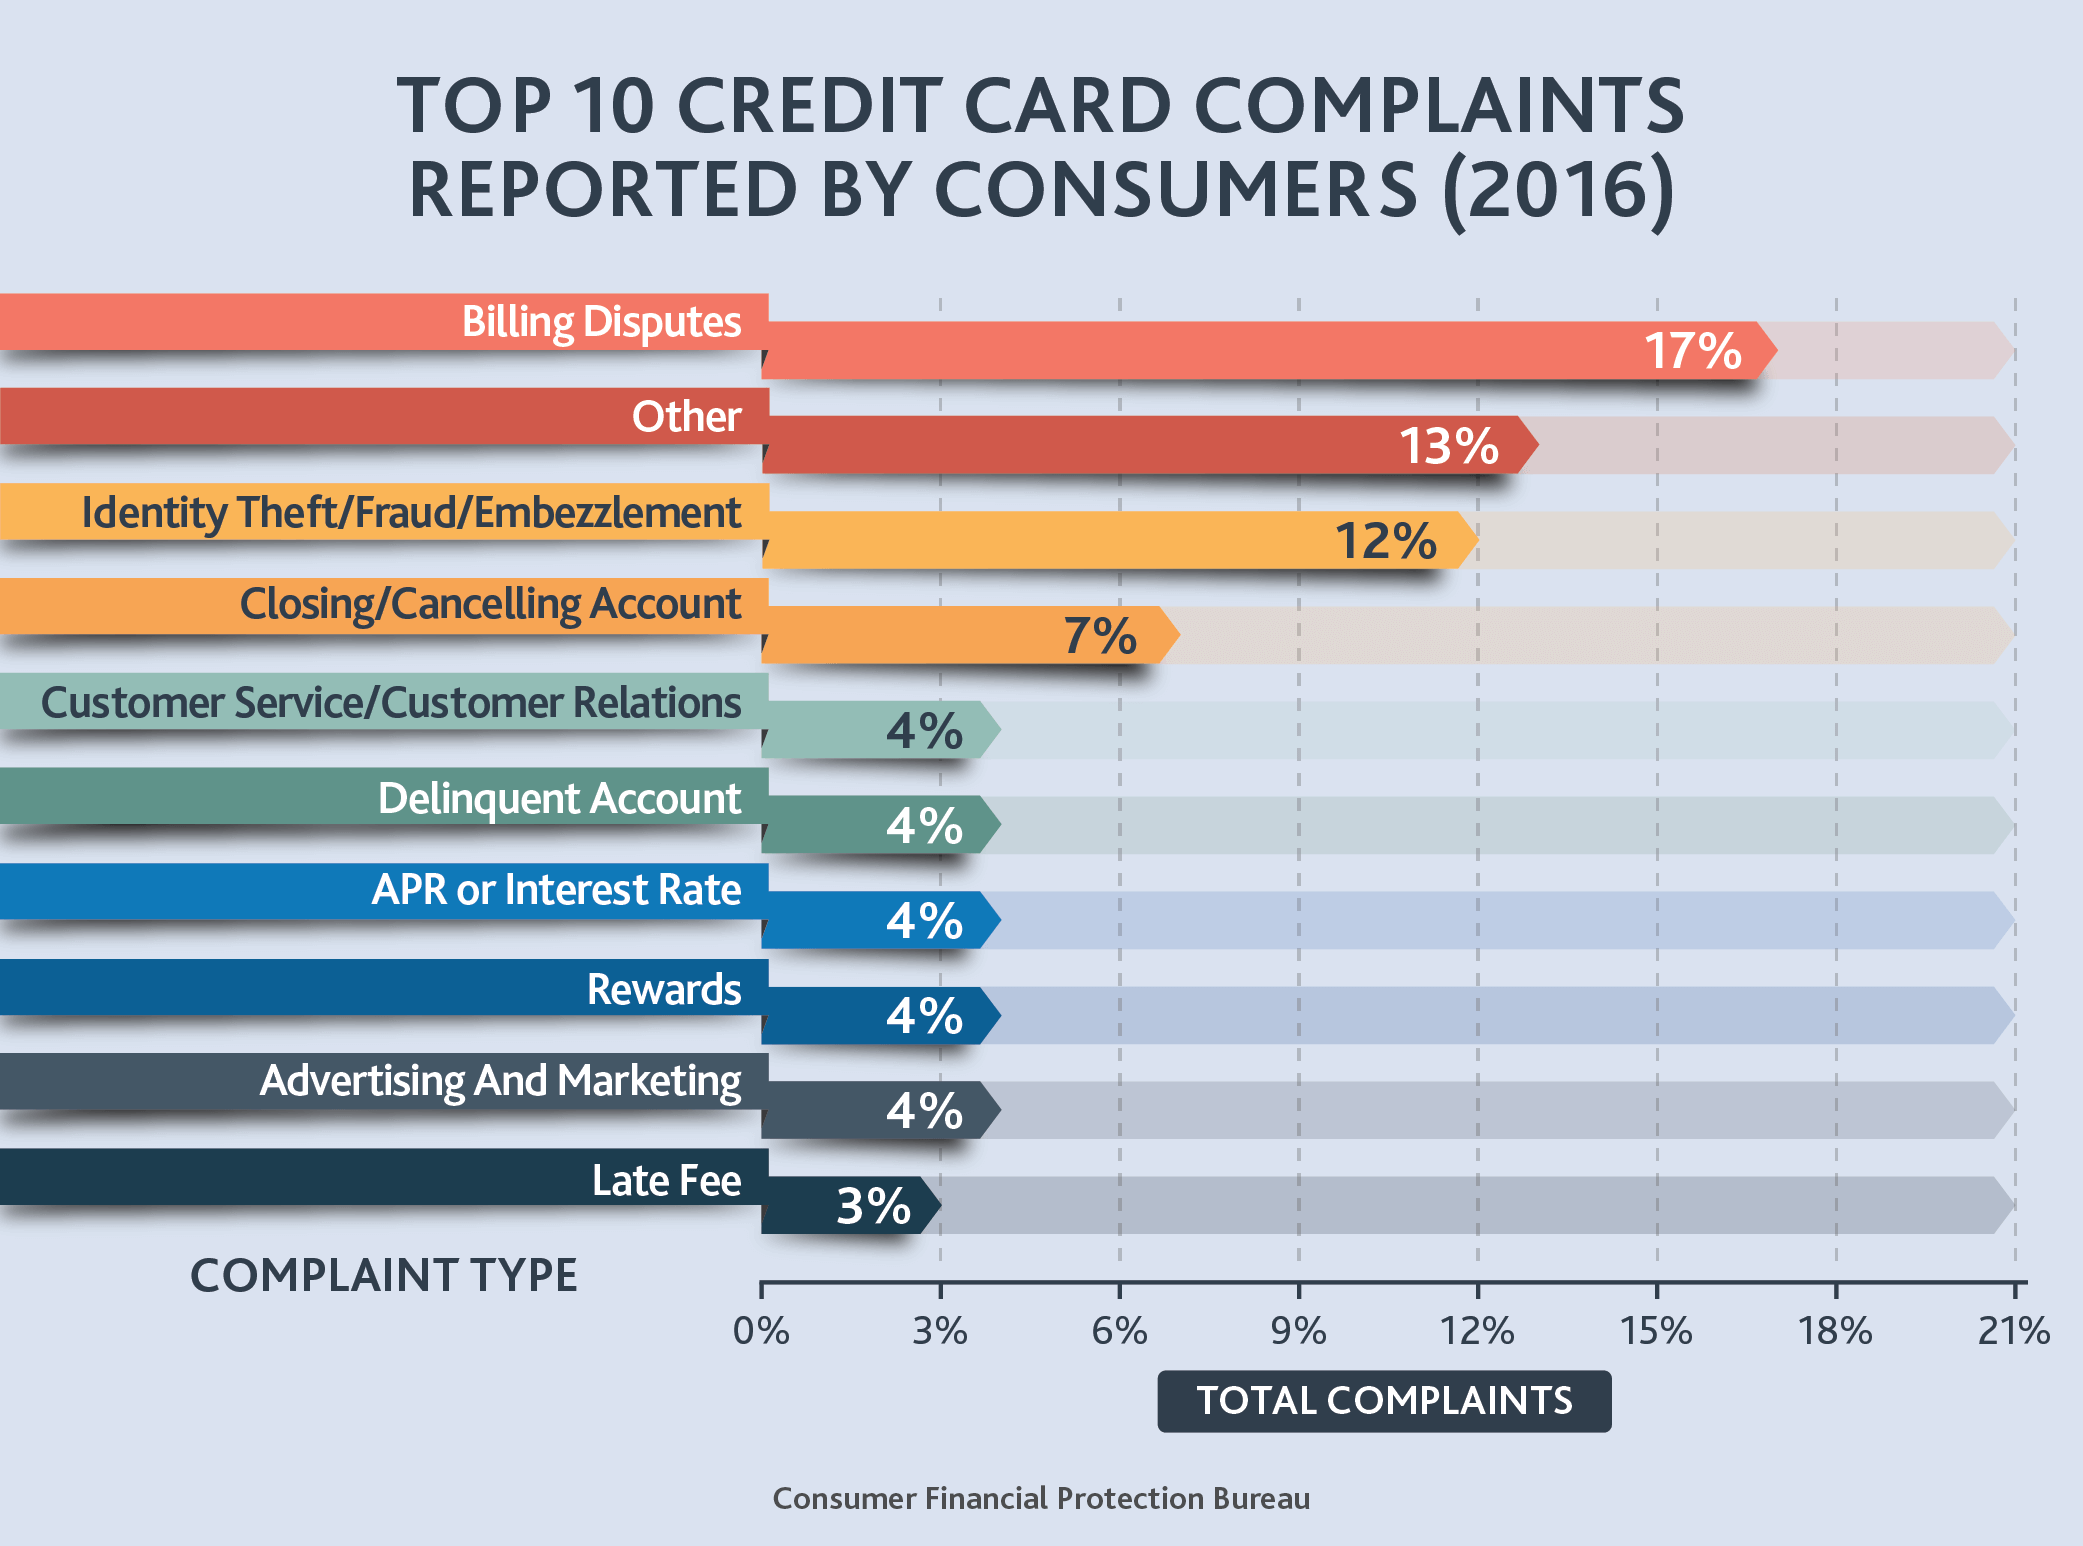 Top 10 Credit Card Complaints Reported By Consumers 2016